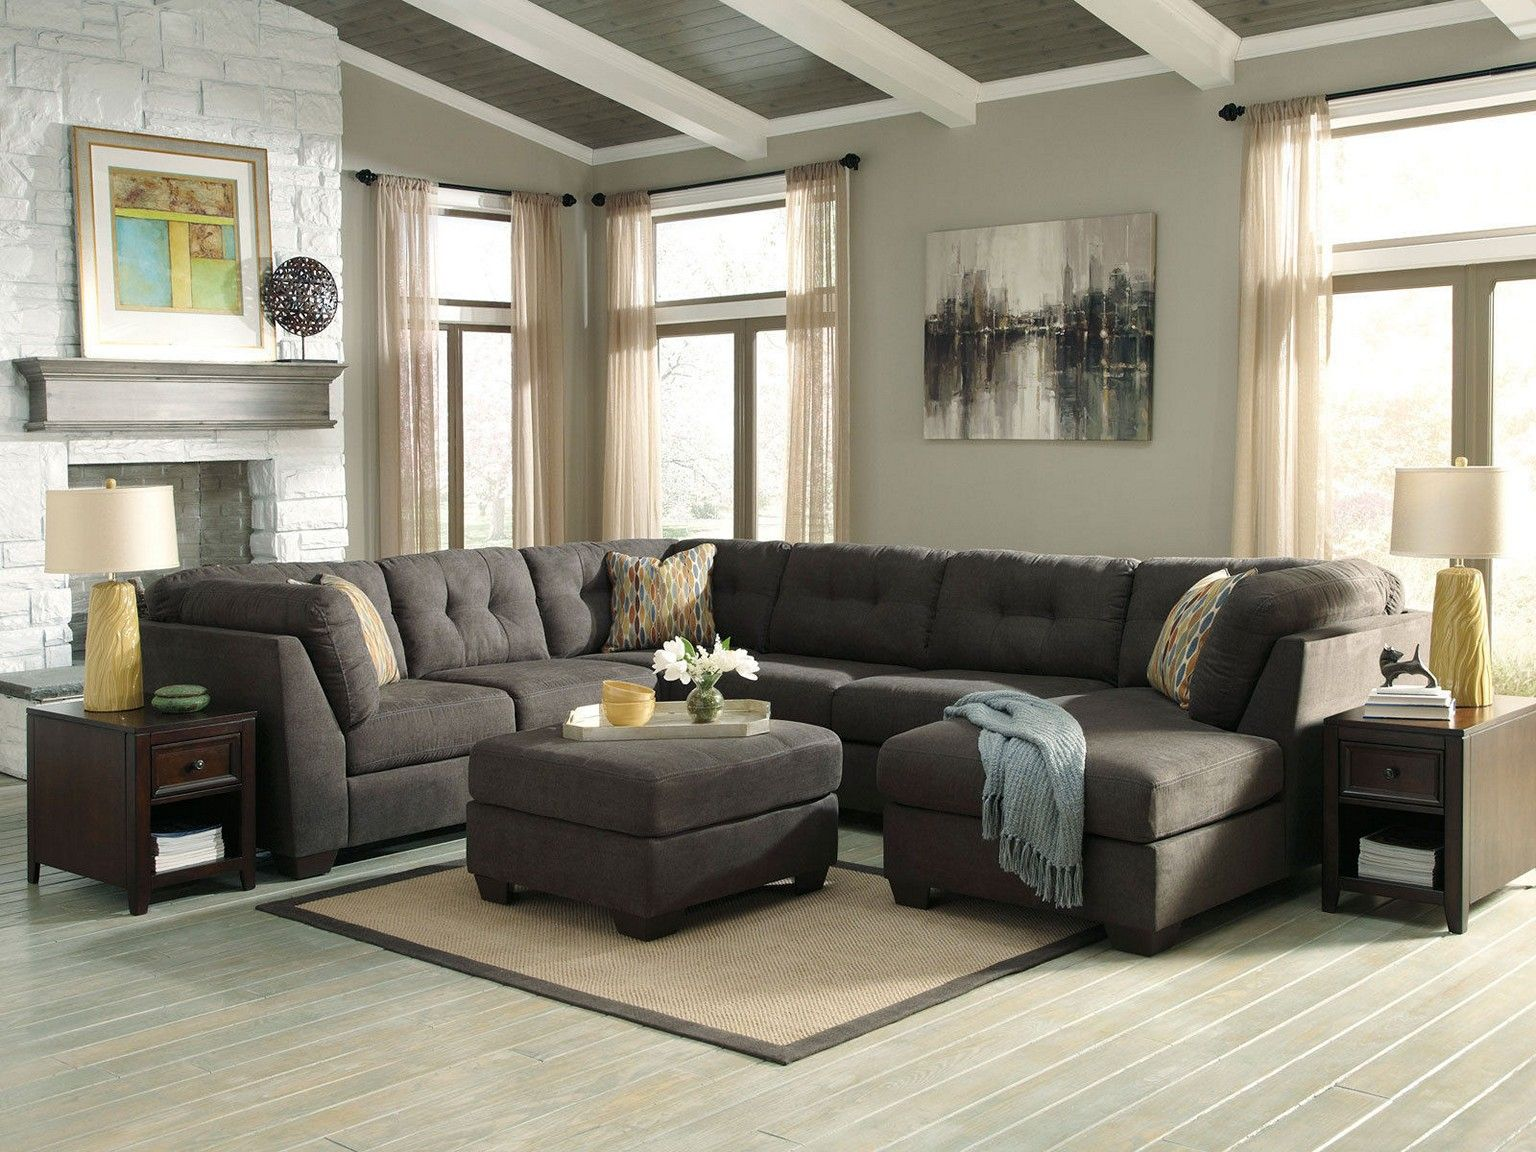 Cozy Cottage Living Room Ideas Pictures | Cosy lounge ...